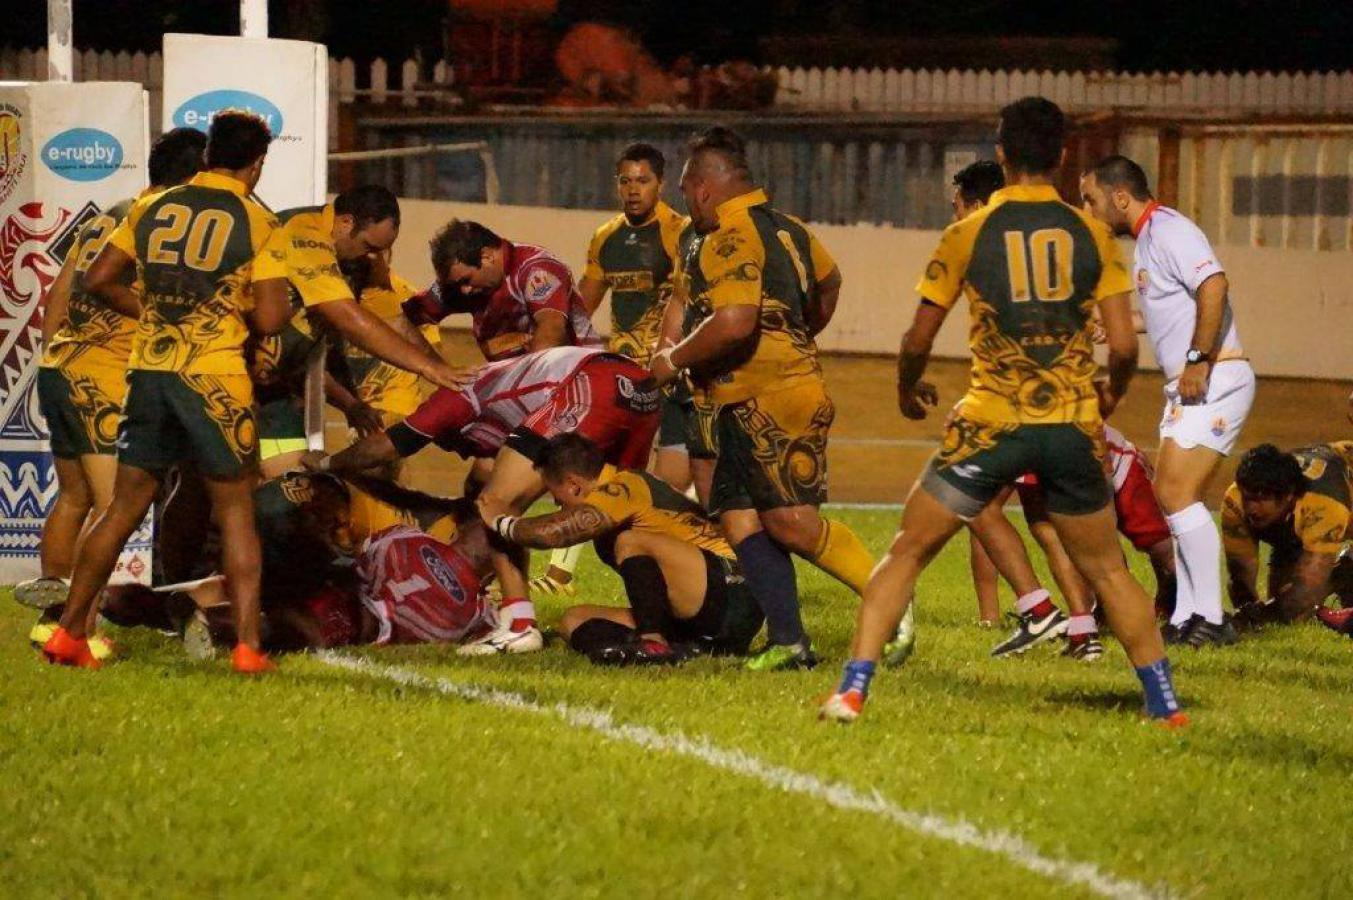 Papeete Rugby Club vs Faa'a Rugby ARO